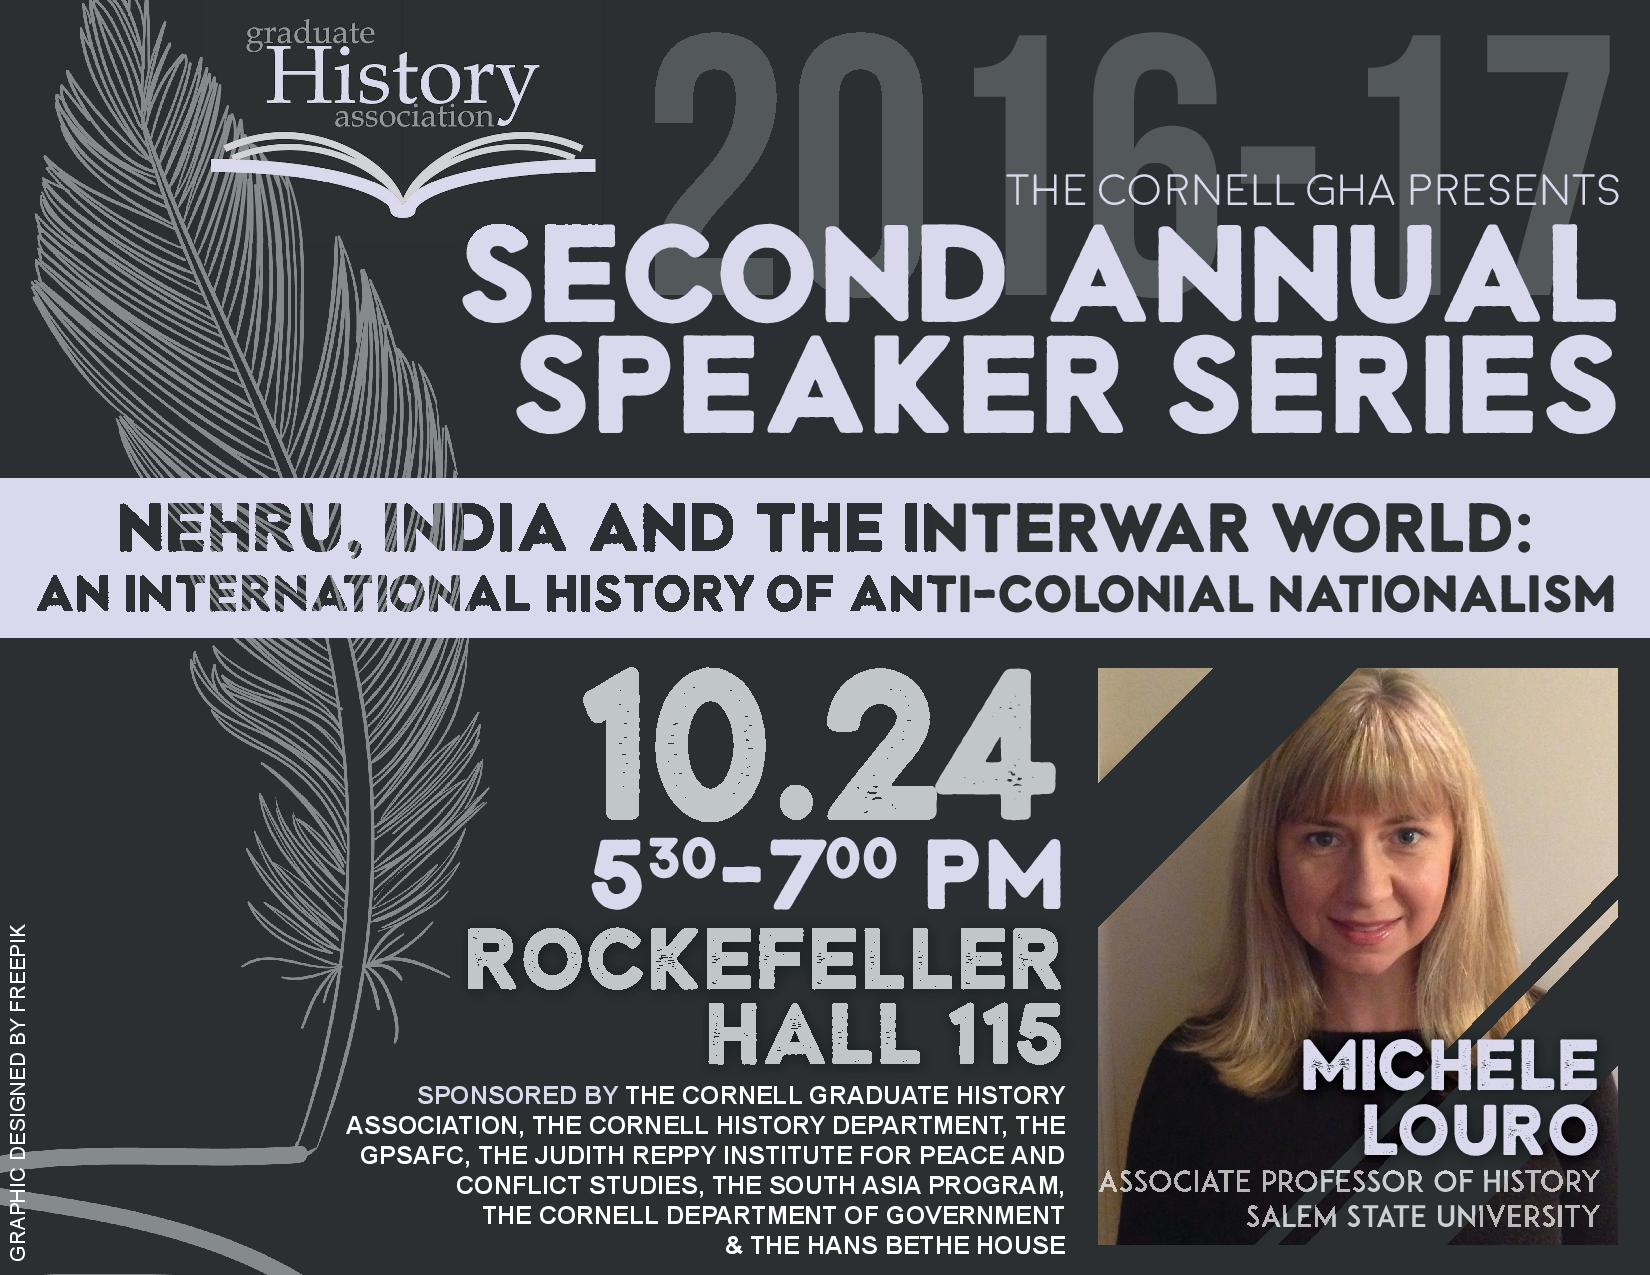 Michele Louro : Second Annual GHA Speaker Series